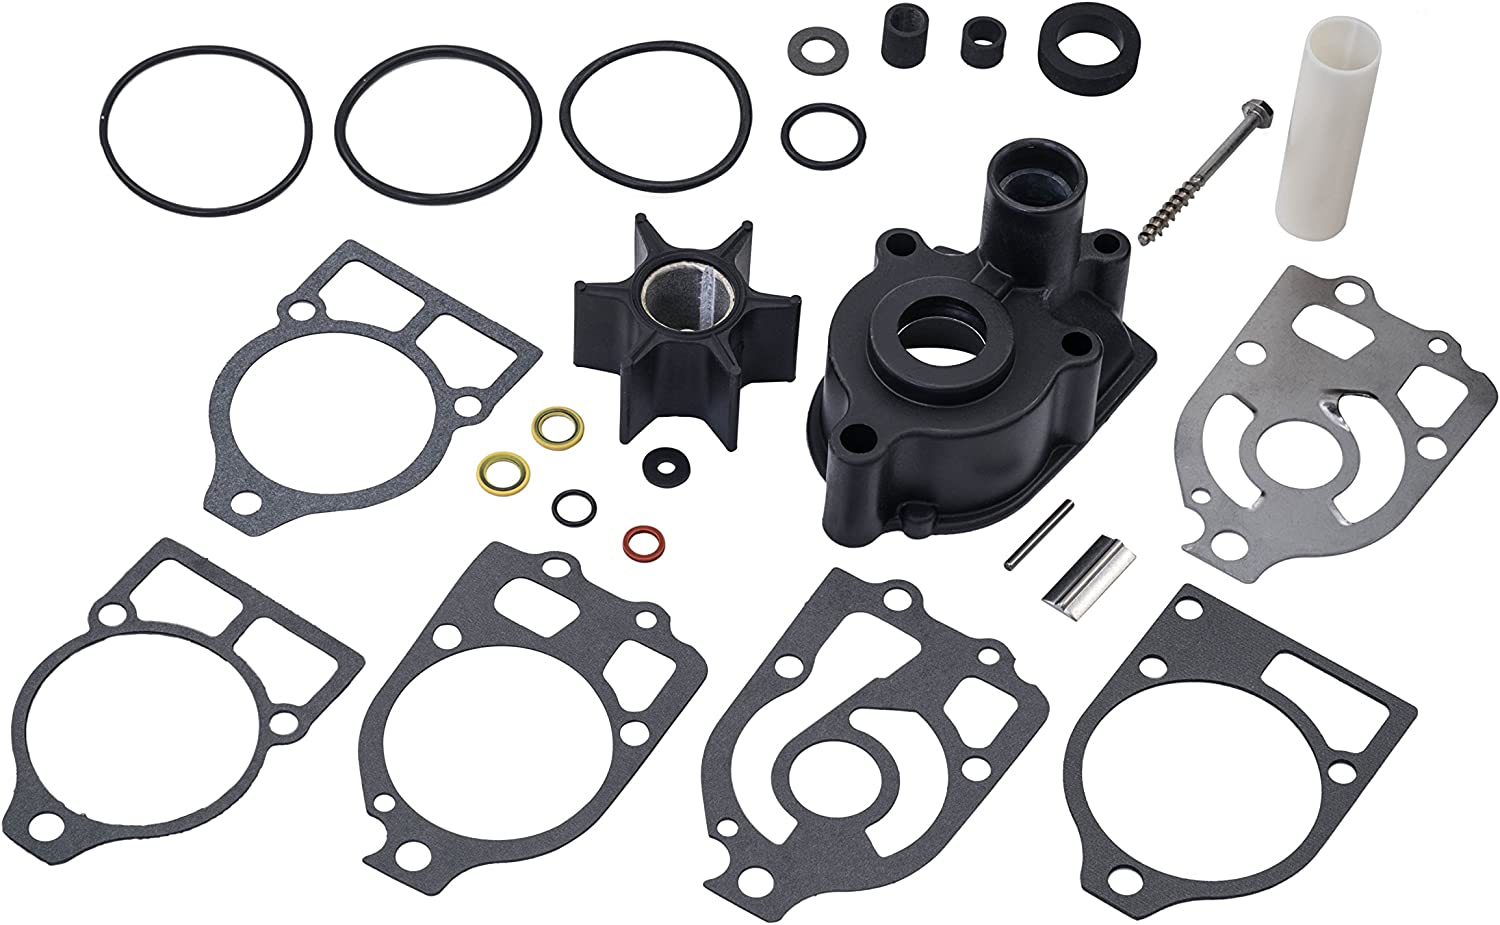 Quicksilver 96148Q8 Water Pump Repair Kit- Mercury and Mariner Outboards and MerCruiser Stern Drives